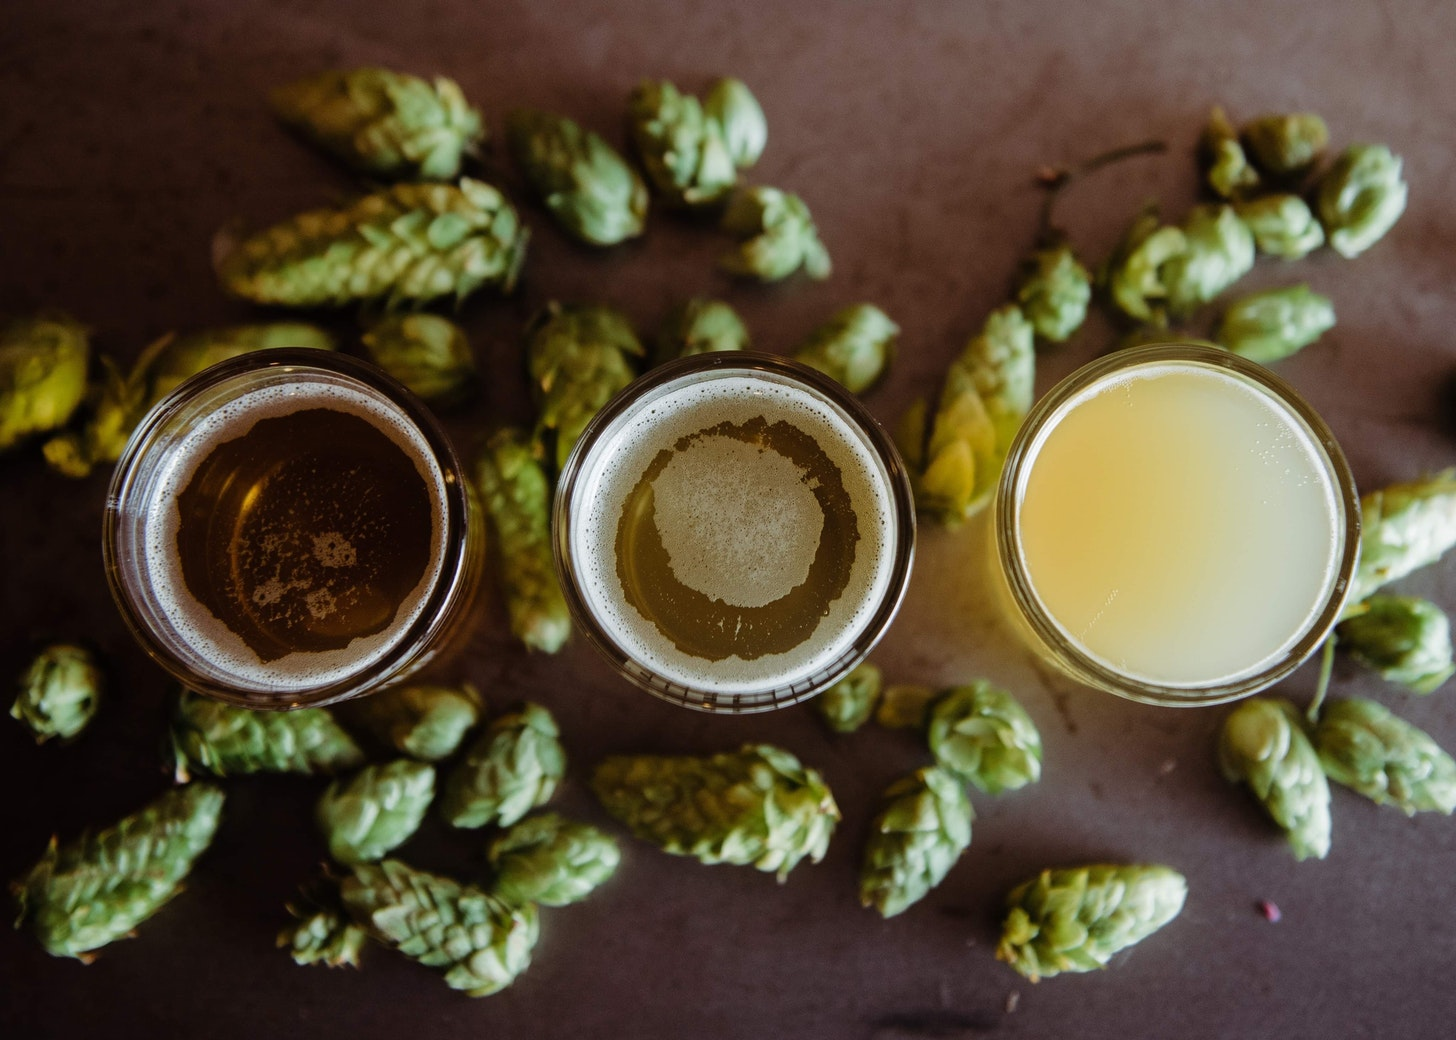 beers surrounded by hop flower cones used for extraction